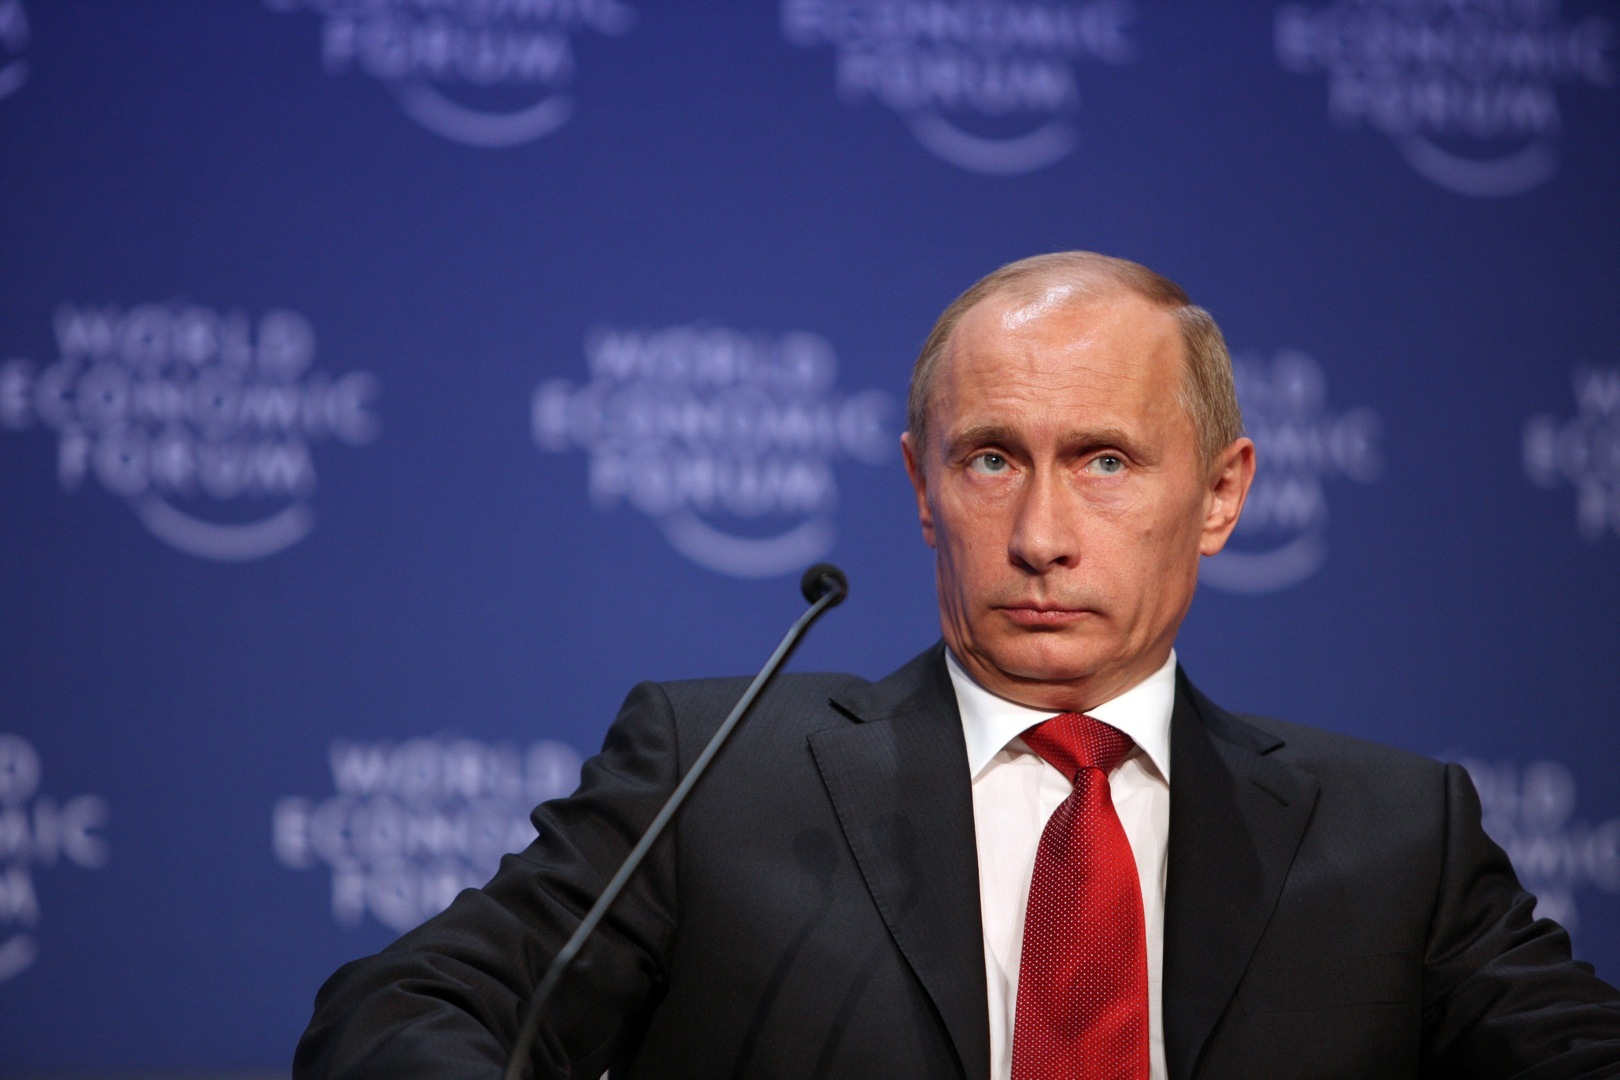 Vladimir Putin, Prime Minister of the Russian Federation at the World Economic Forum Annual Meeting in 2009. (Photo courtesy World Economic Forum)